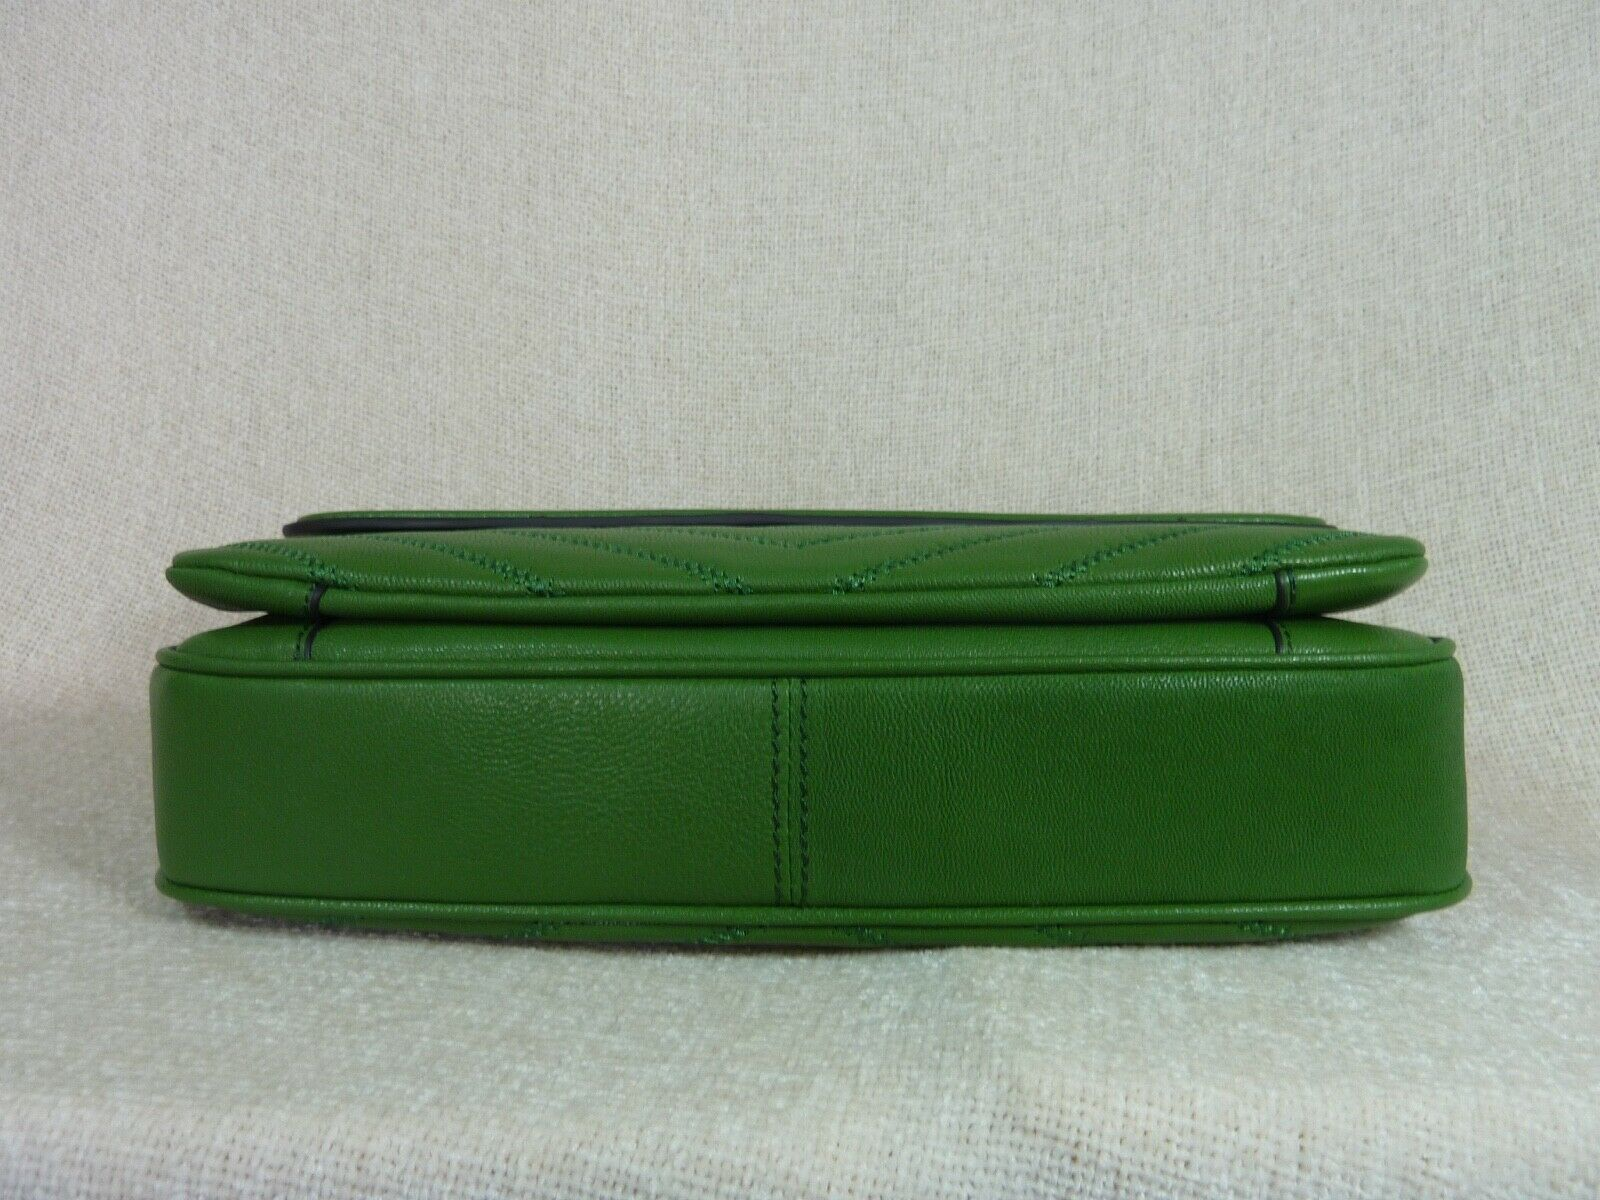 NWT Tory Burch Watercress Green Leather Fleming Convertible Shoulder Bag image 6